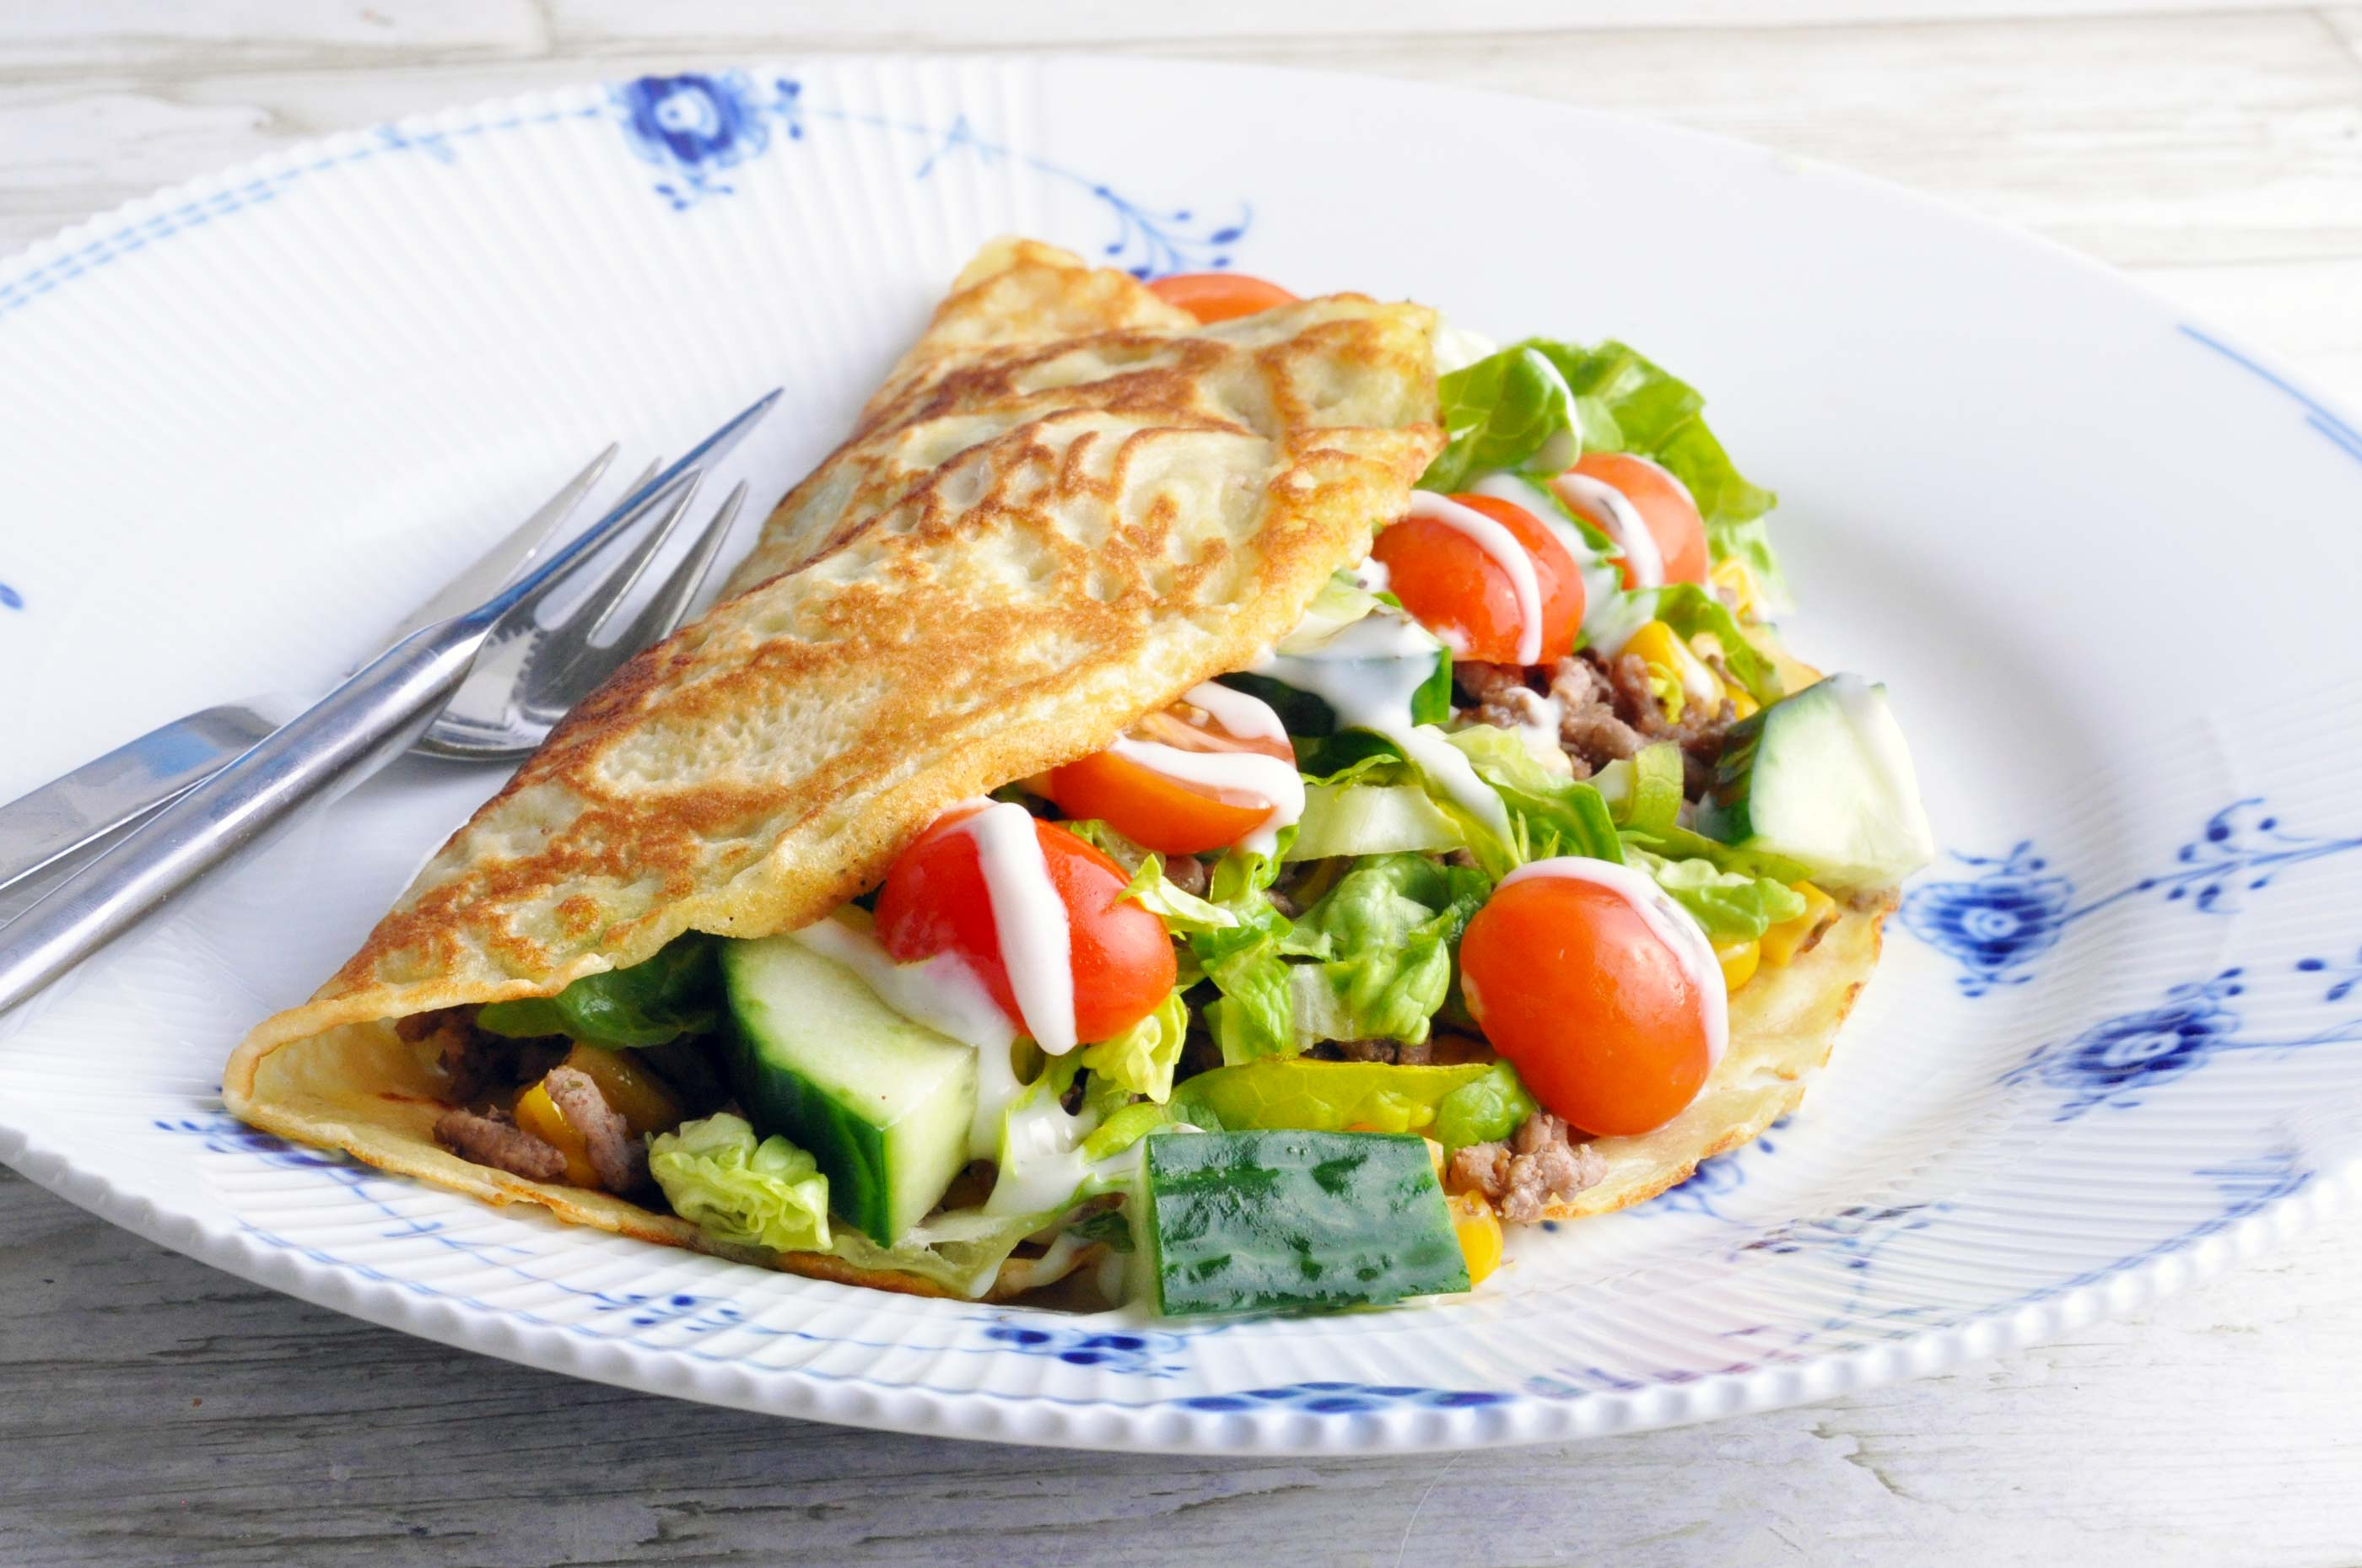 Savoury Crepes With Beef Mince And Salad Kid Favourite